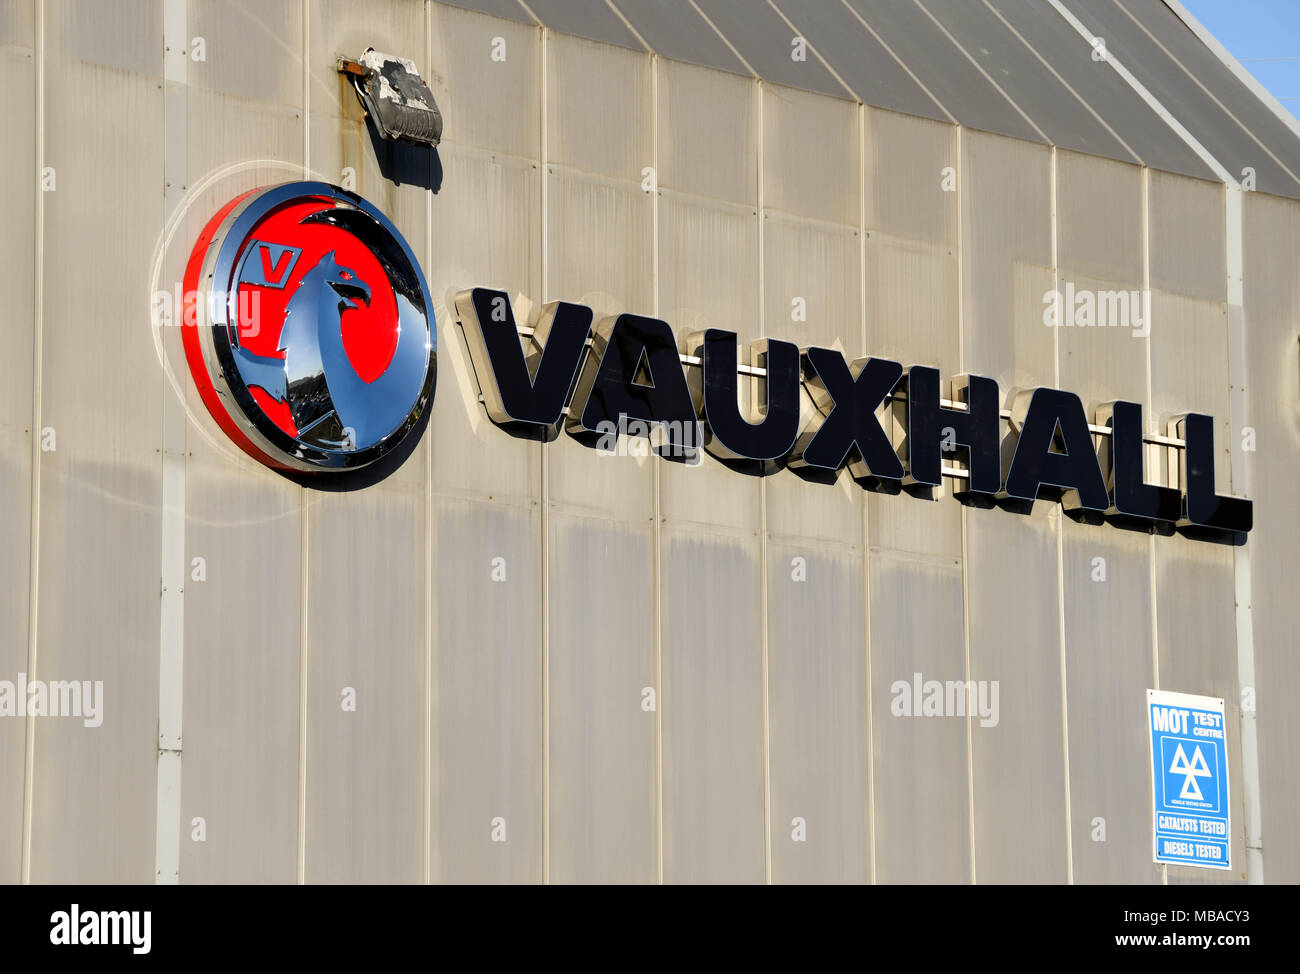 Corporate logo of Vauxhall on the side wall of a car showroom - Stock Image